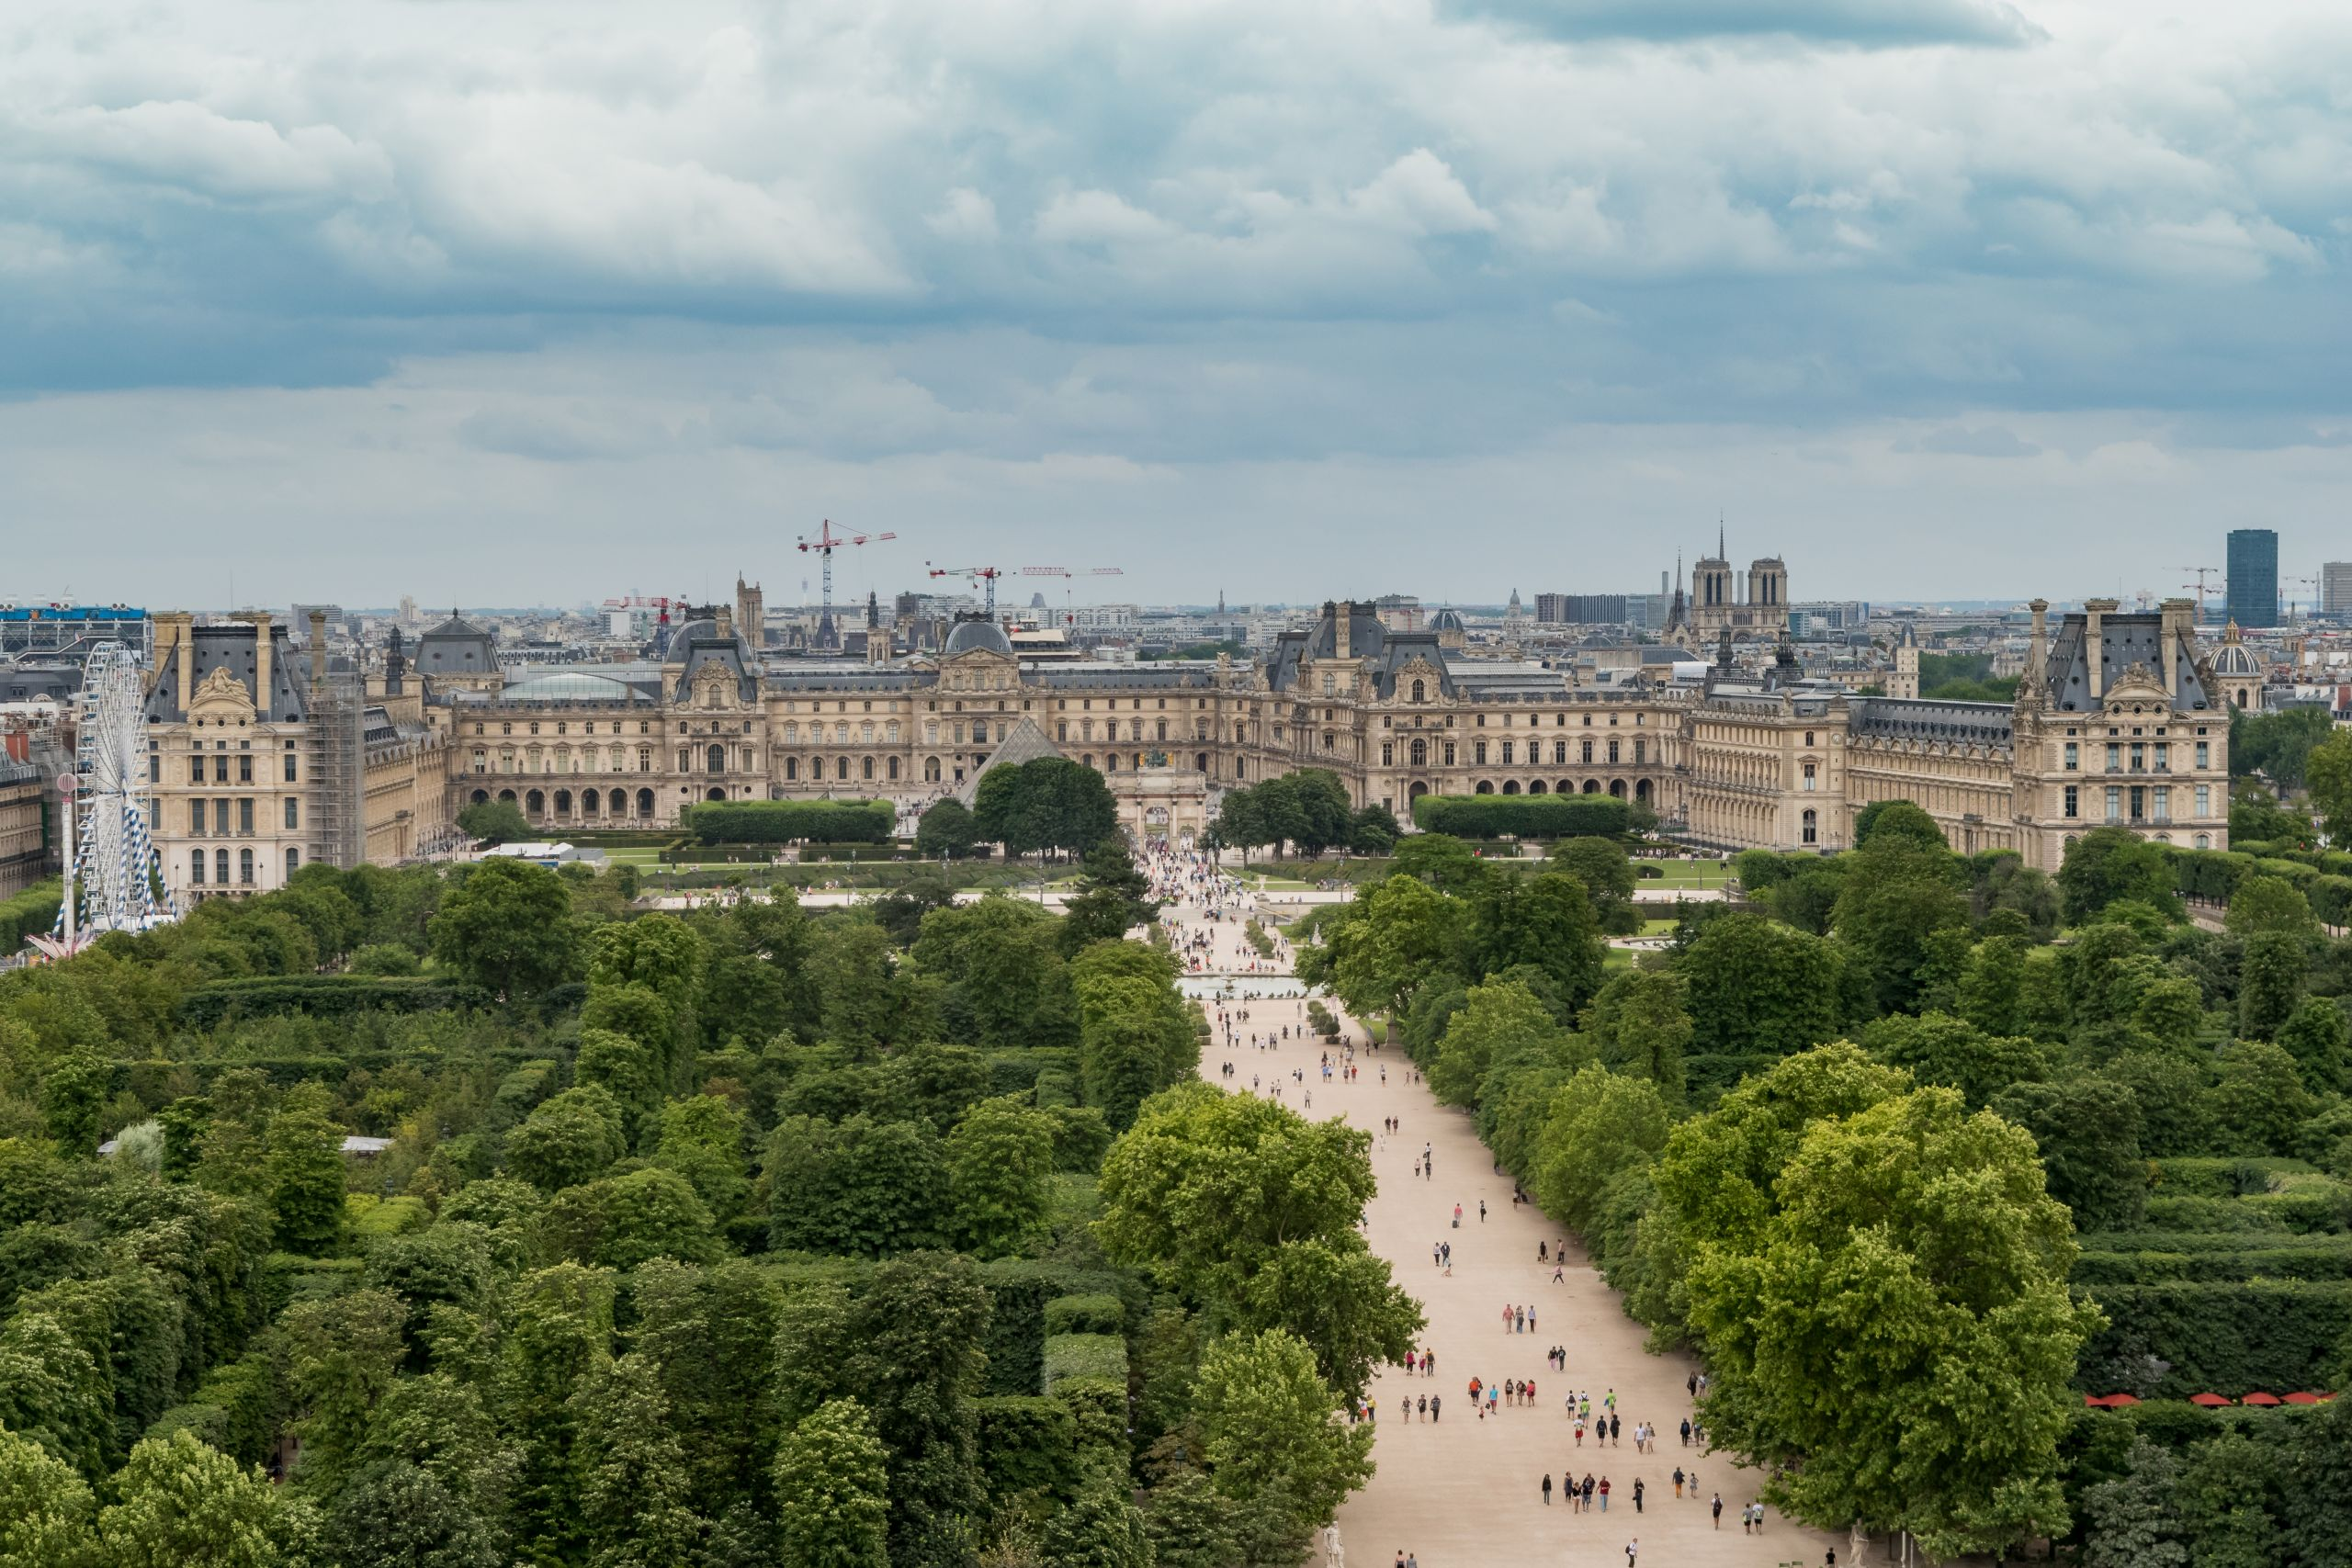 Louvre Museum from the Roue de Paris 11 July 2016